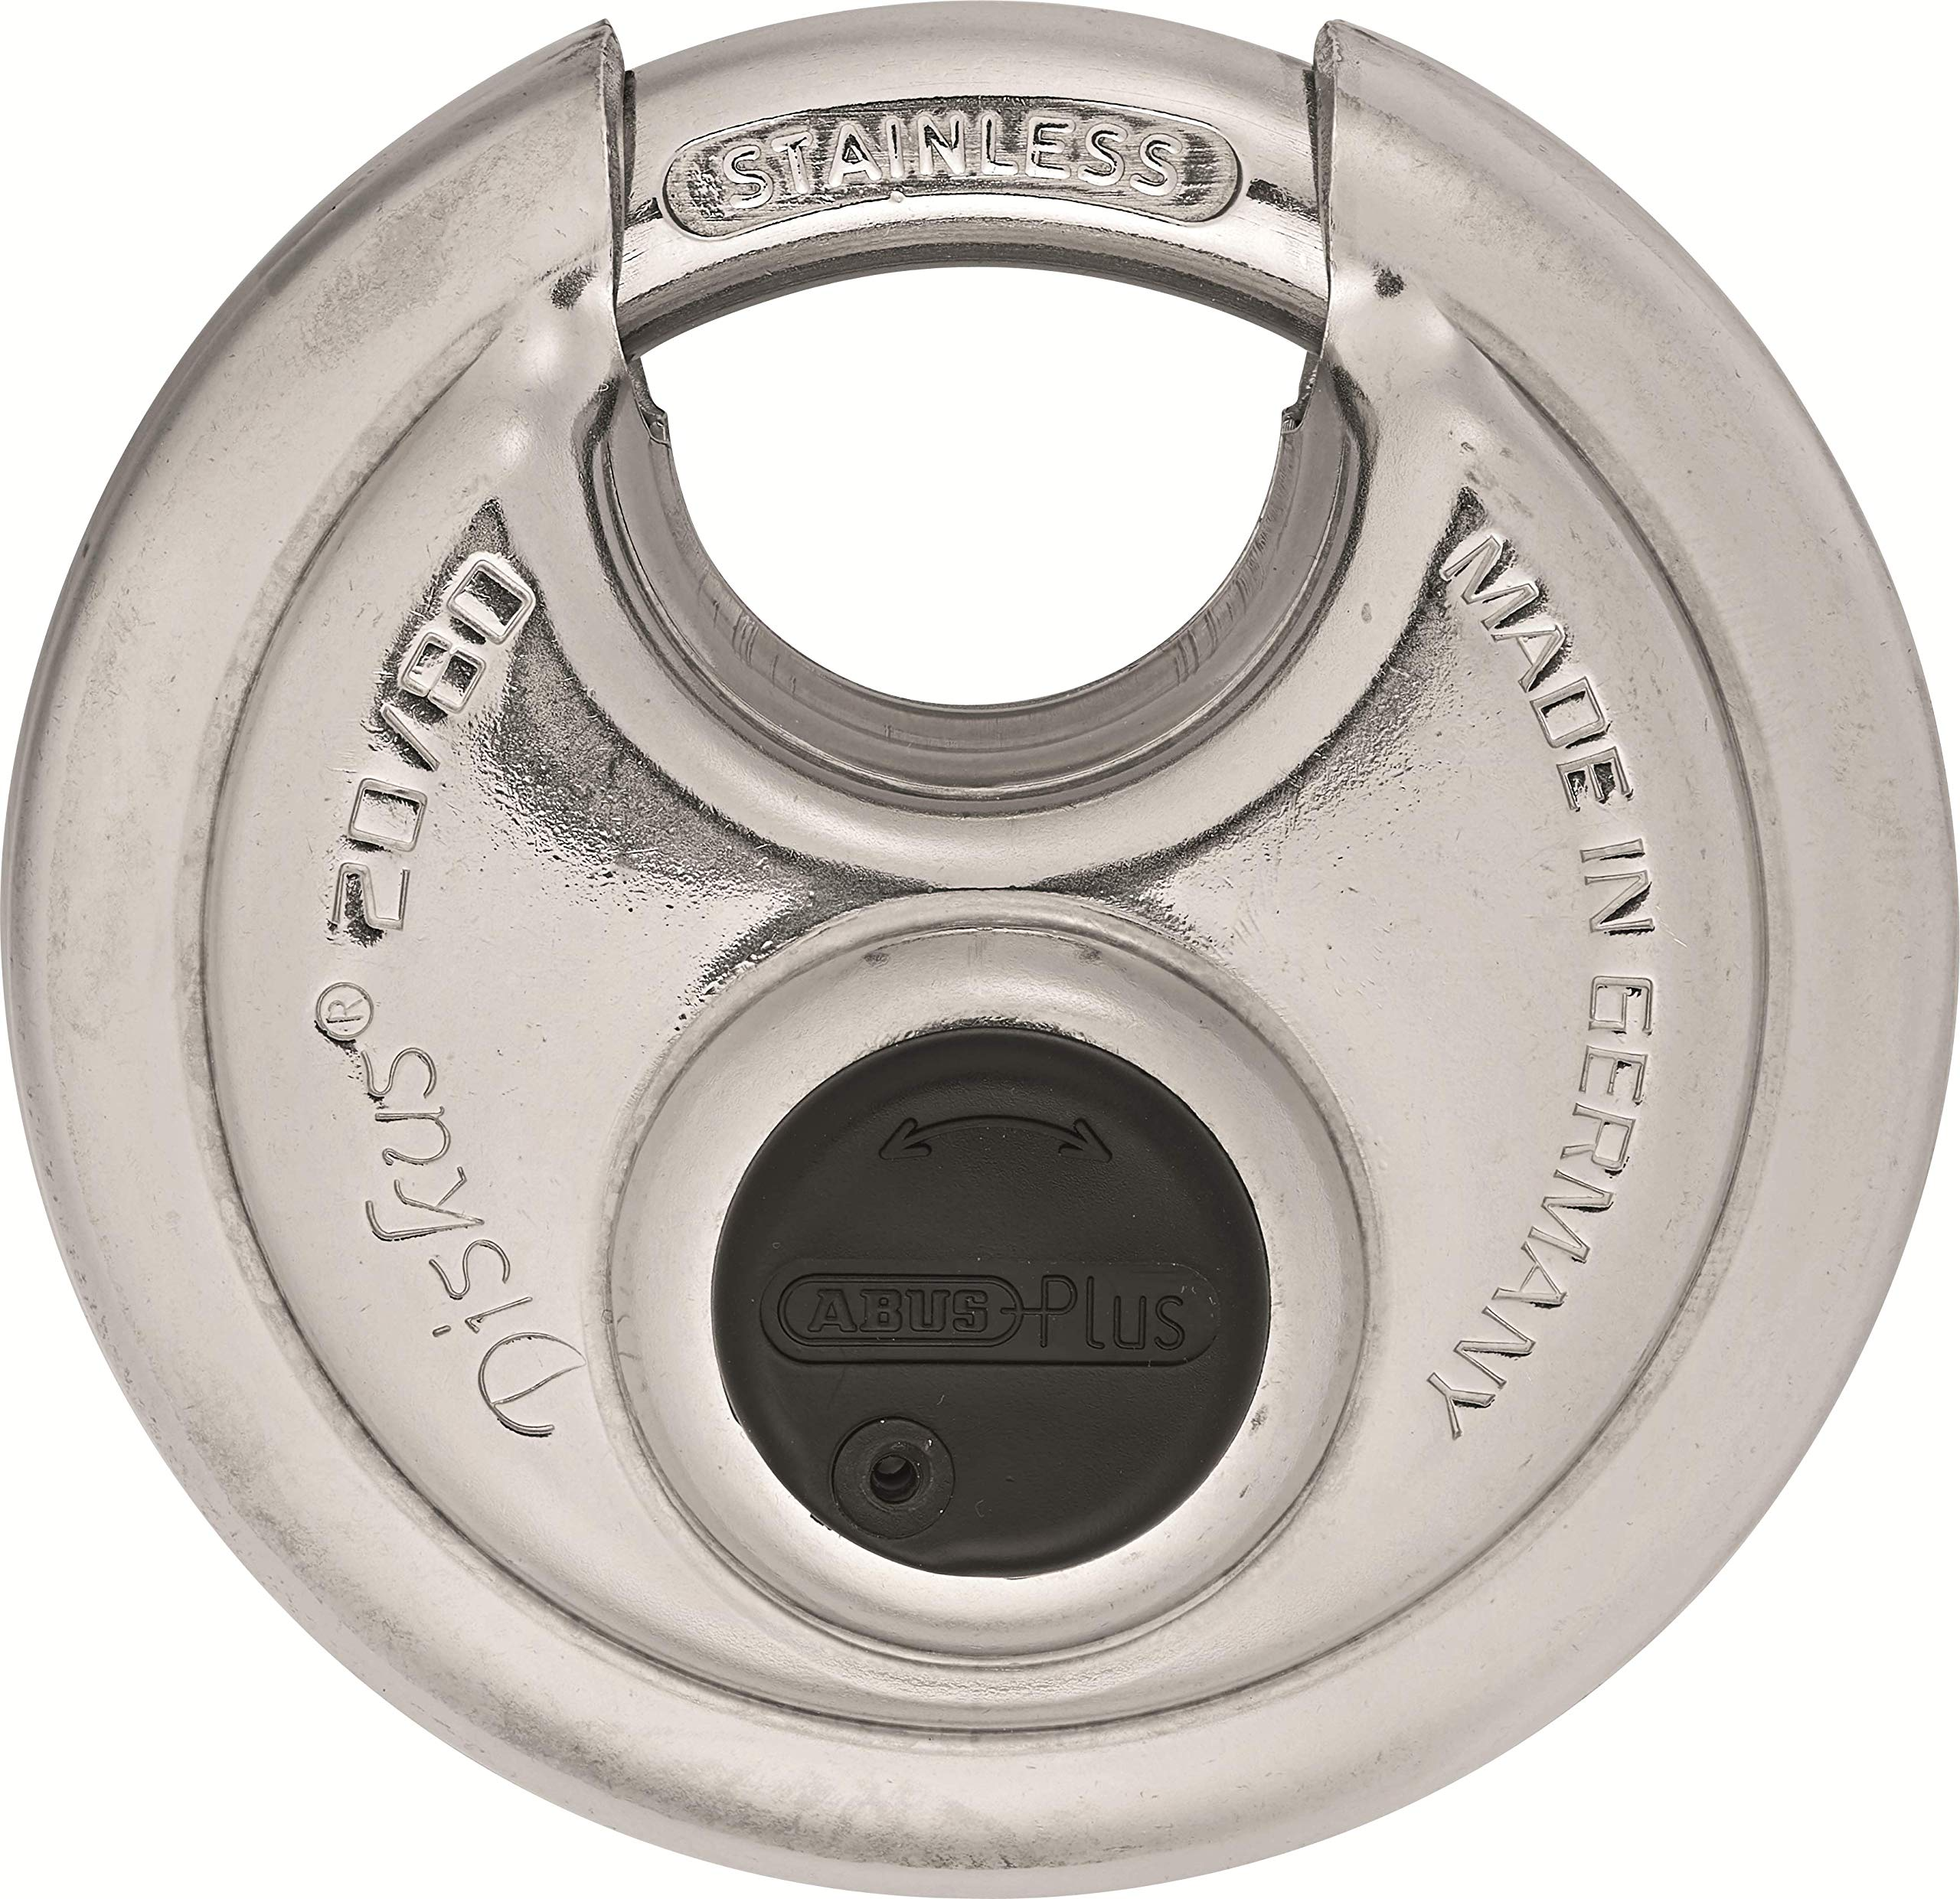 ABUS 20/80 Diskus Stainless Steel Padlock Keyed Different by ABUS